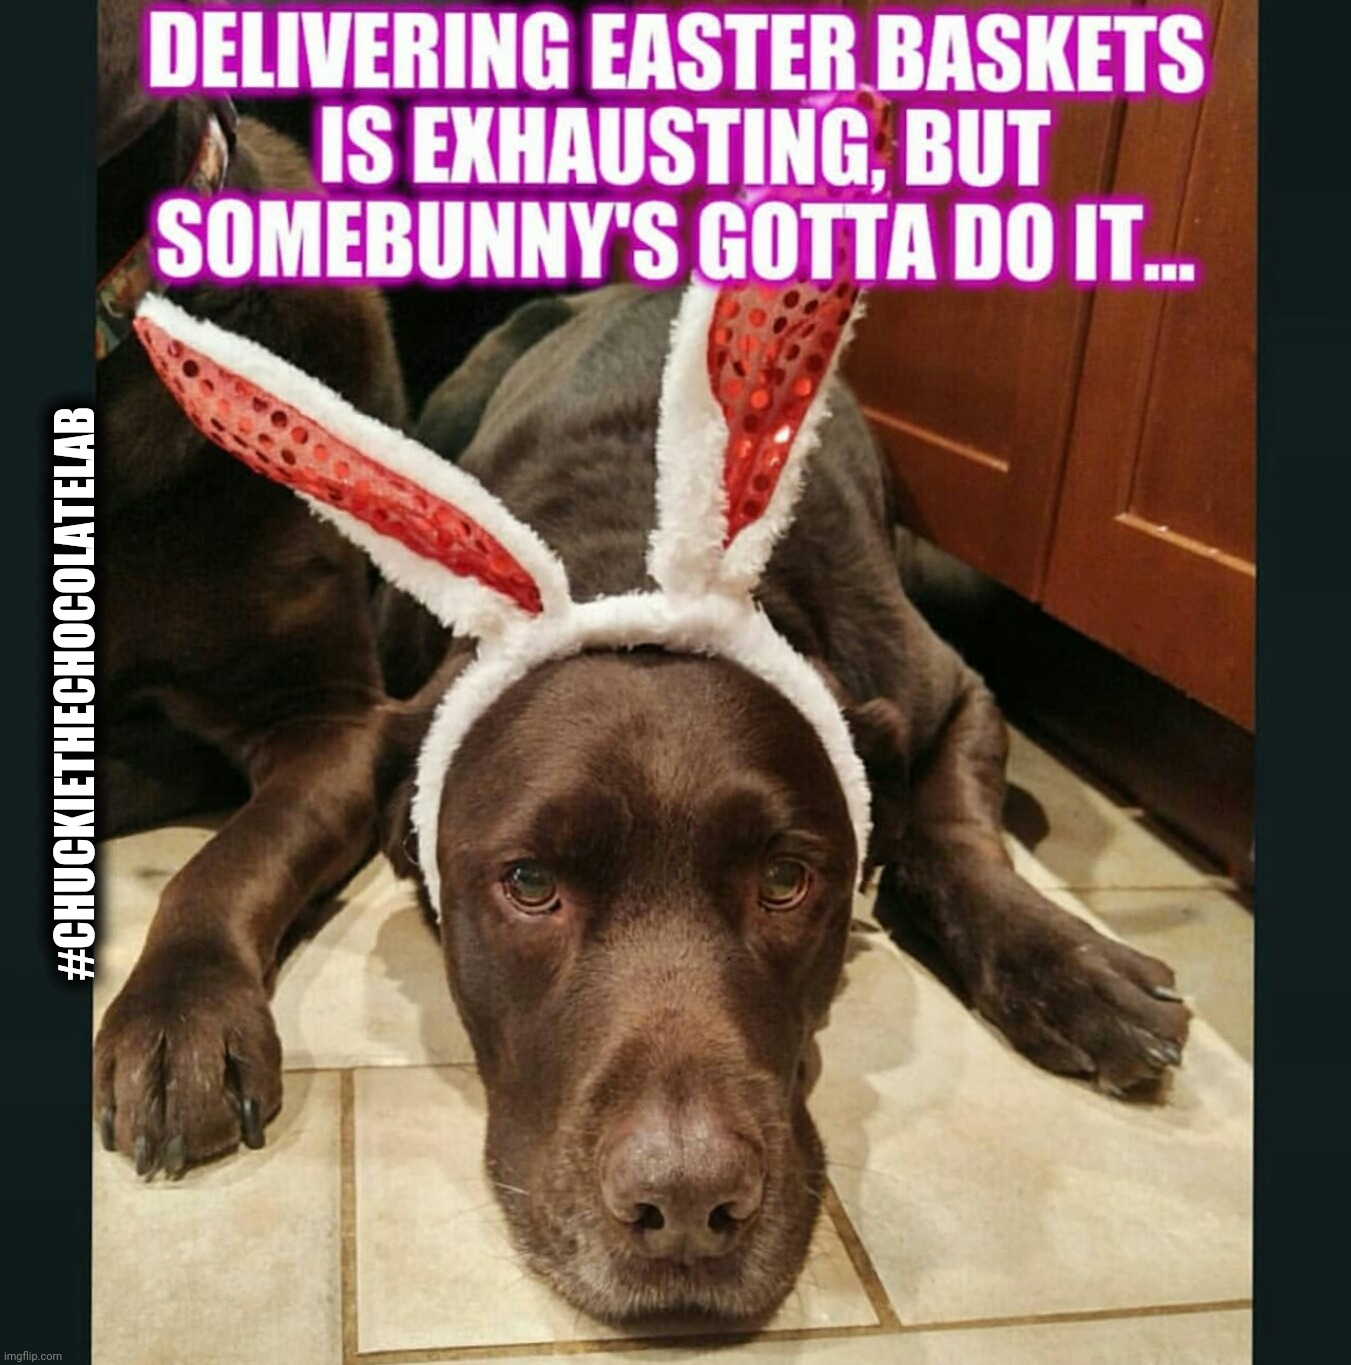 Easter Dog |  #CHUCKIETHECHOCOLATELAB | image tagged in chuckie the chocolate lab,easter,spring,dogs,funny,memes | made w/ Imgflip meme maker